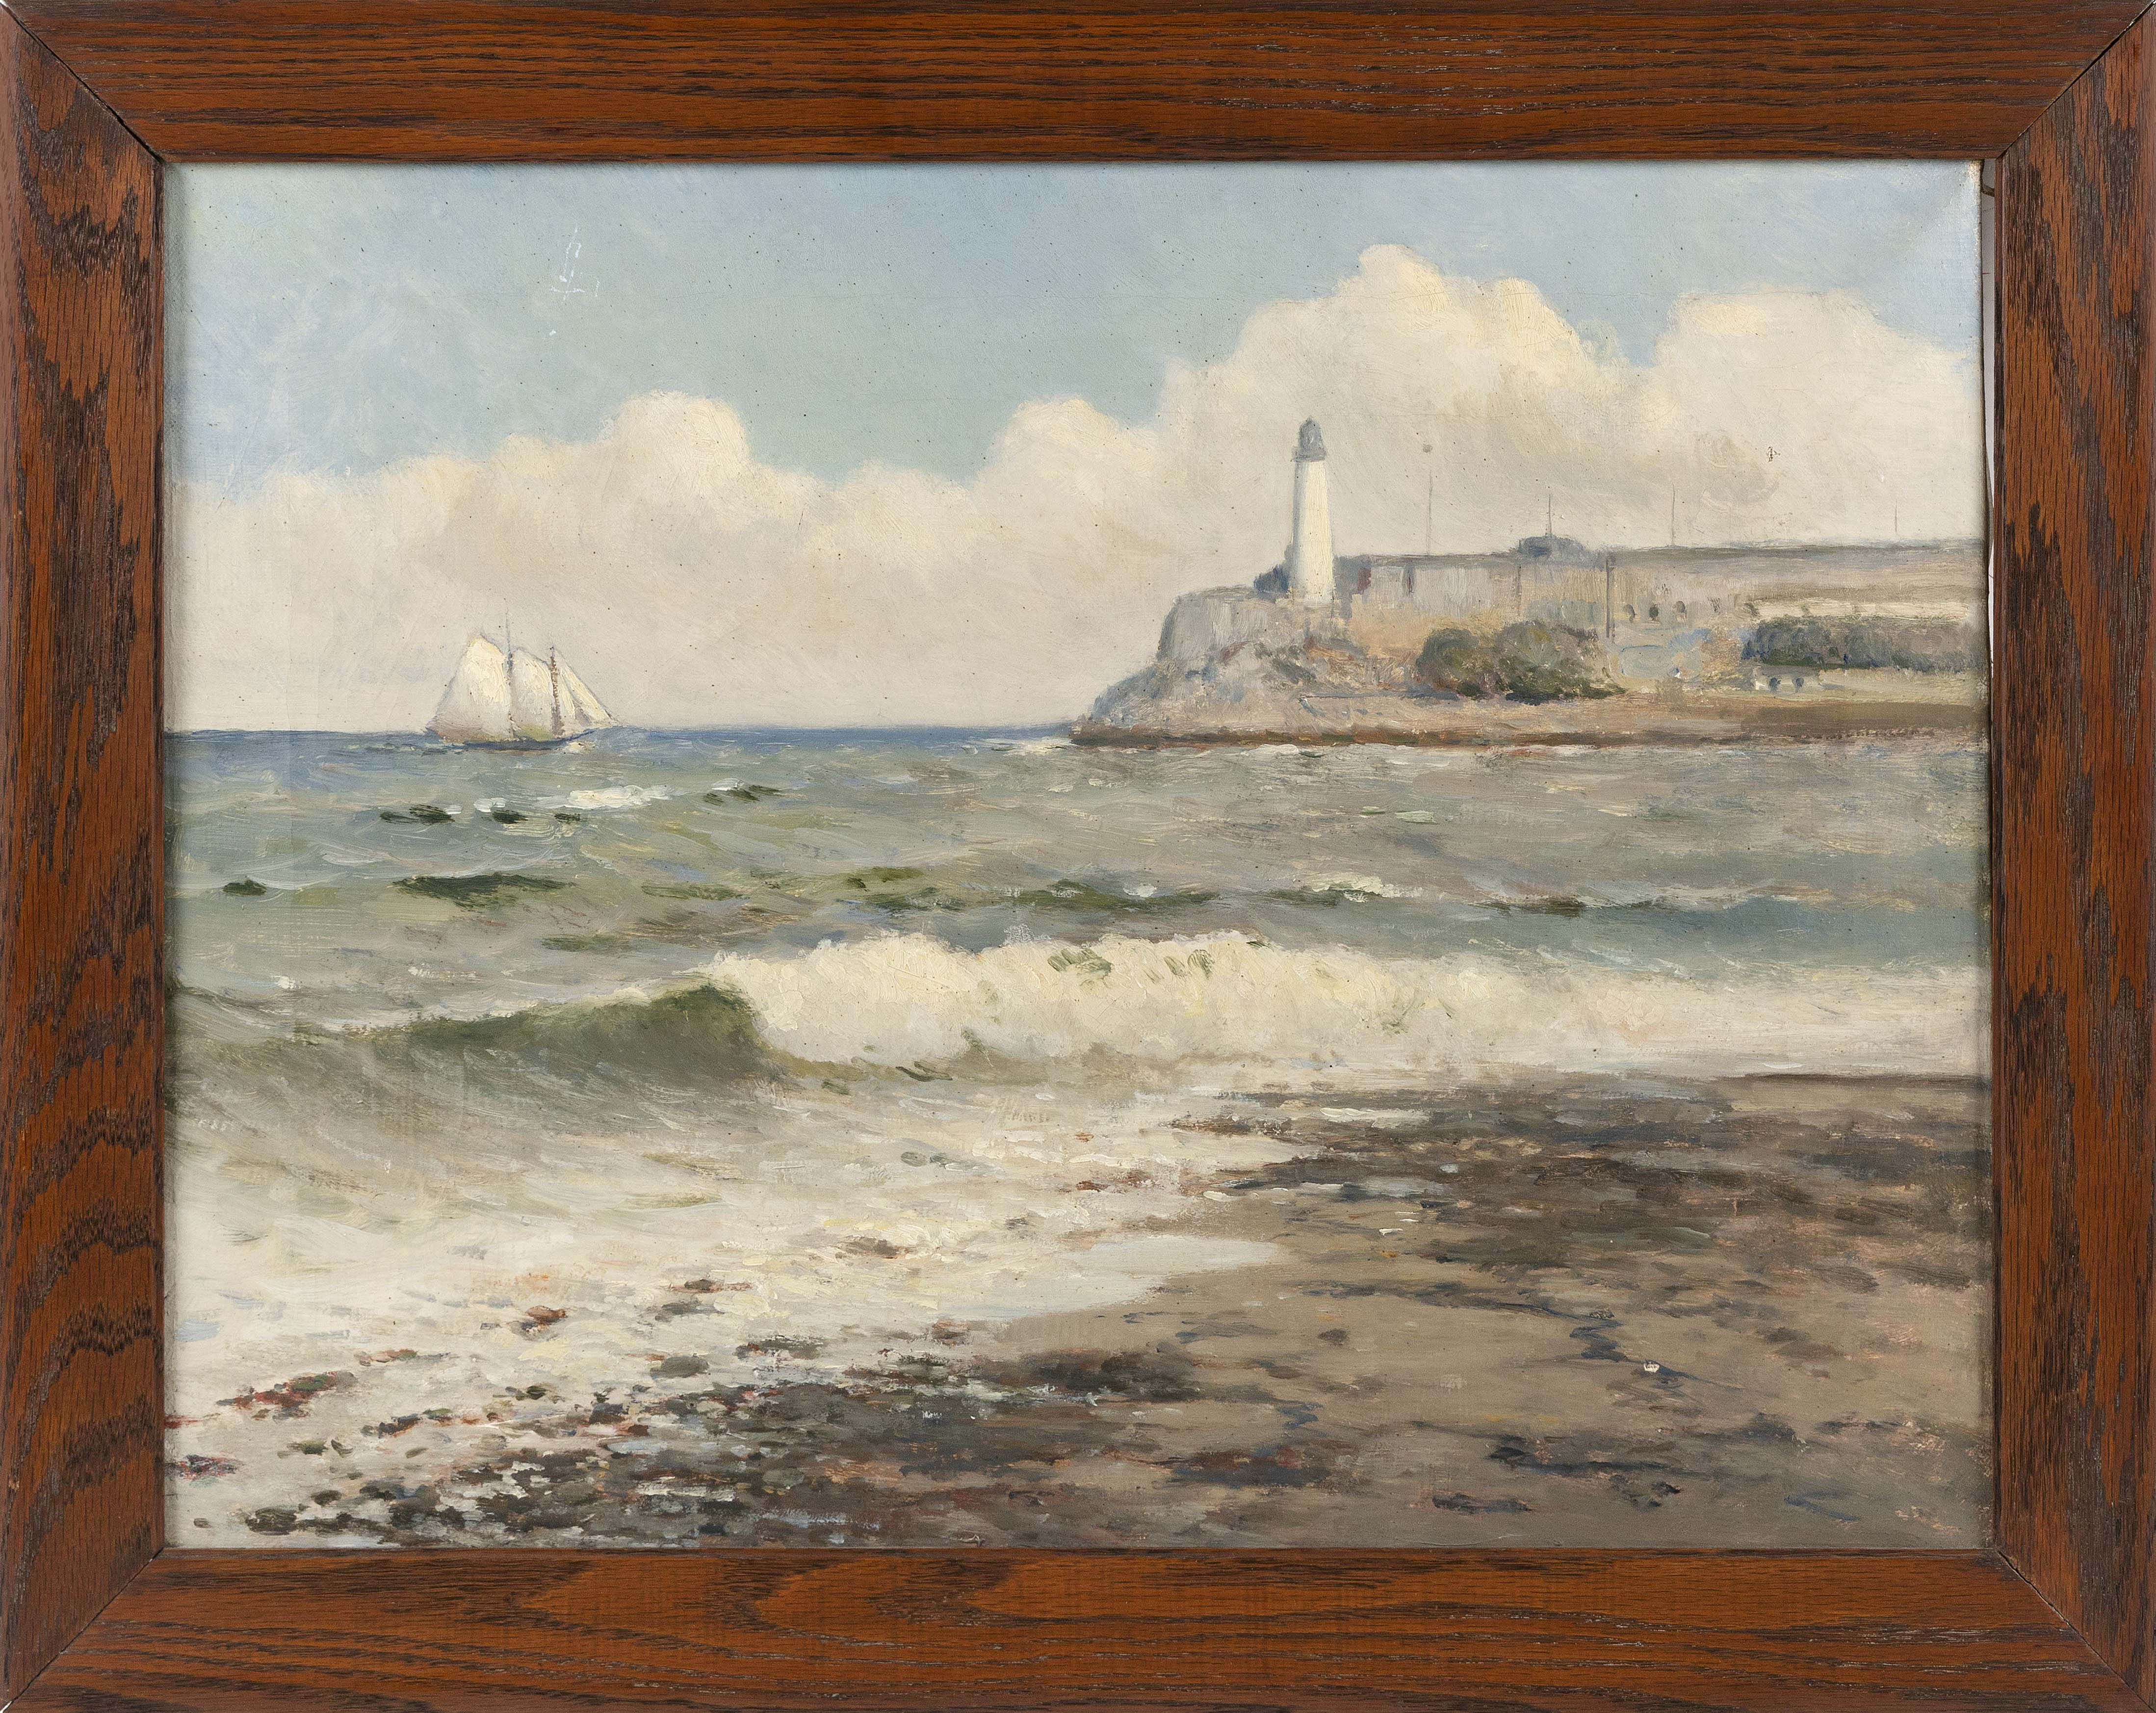 """ATTRIBUTED TO CHARLES DREW CAHOON (Massachusetts, 1861-1951), Ship off a lighthouse., Oil on canvas, 17"""" x 22"""". Framed 20.25"""" x 25.75""""."""